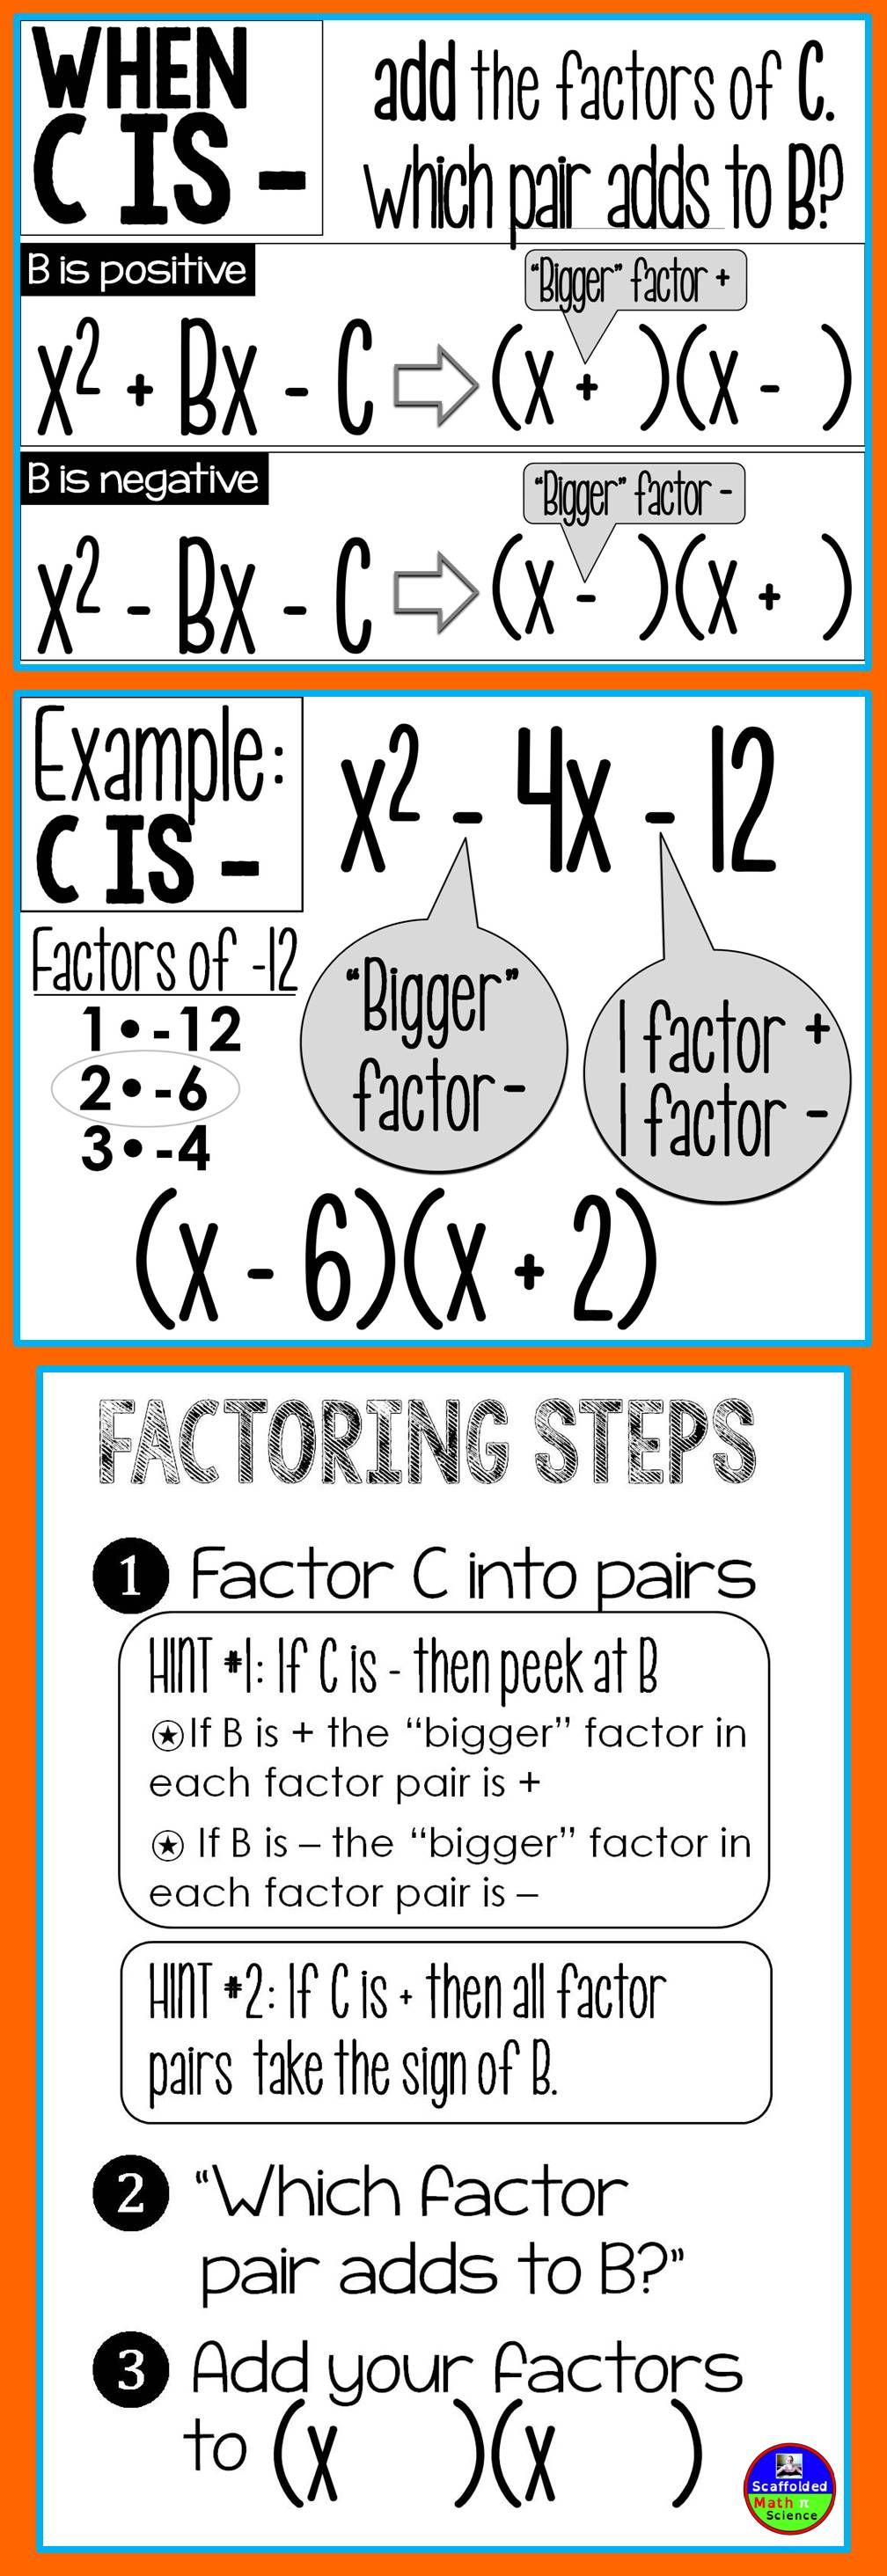 Factoring Posters and Student Handouts | Pinterest | Factors ...